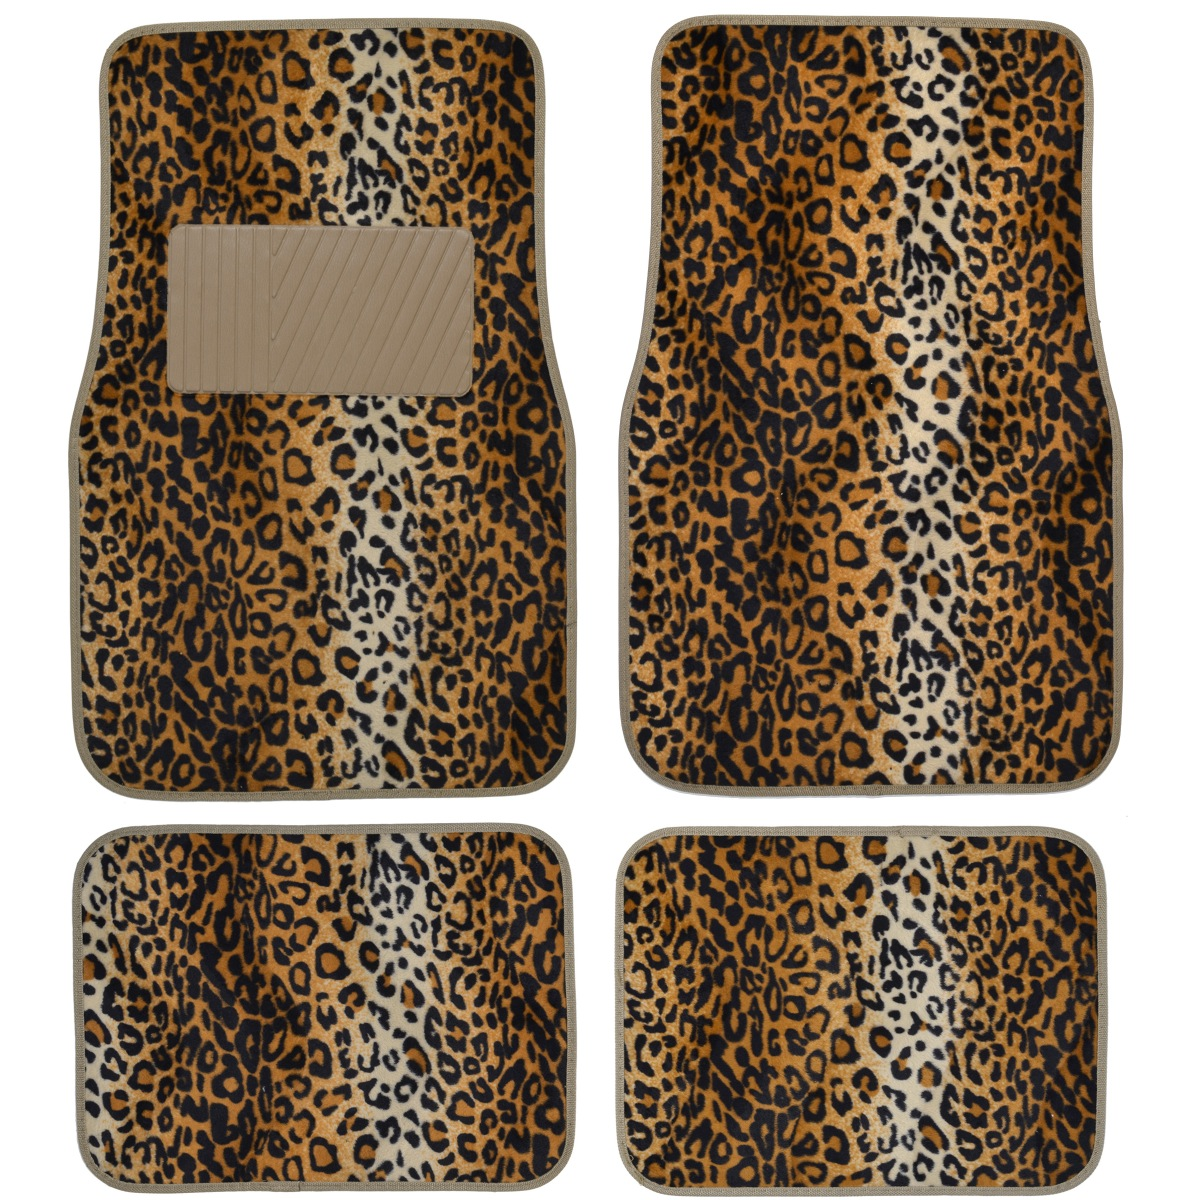 15pc Premium Animal Print Seat Covers And Front Amp Rear